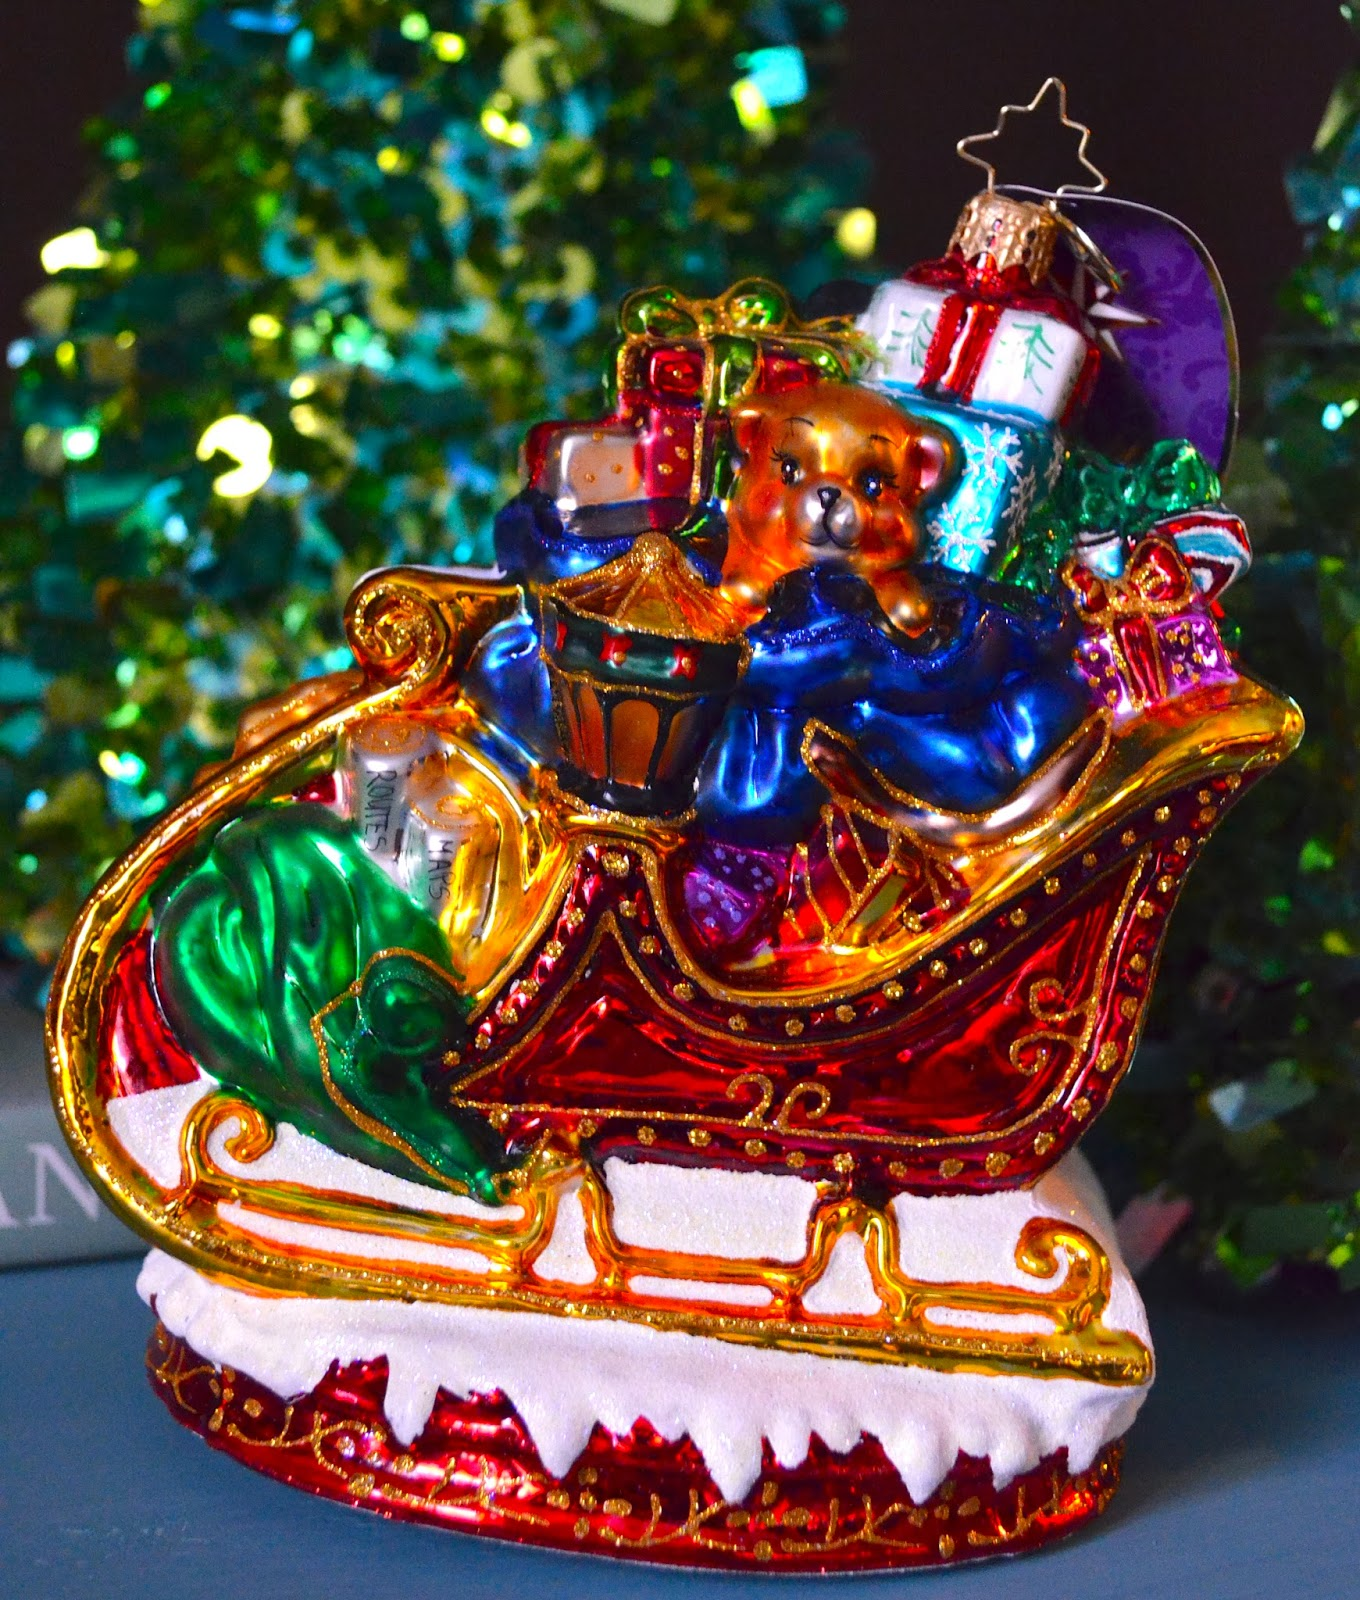 Santa sleigh ornament - My Ornament Was Ready For Takeoff And Is A Beautiful Santa Sleigh Packed With Goodies